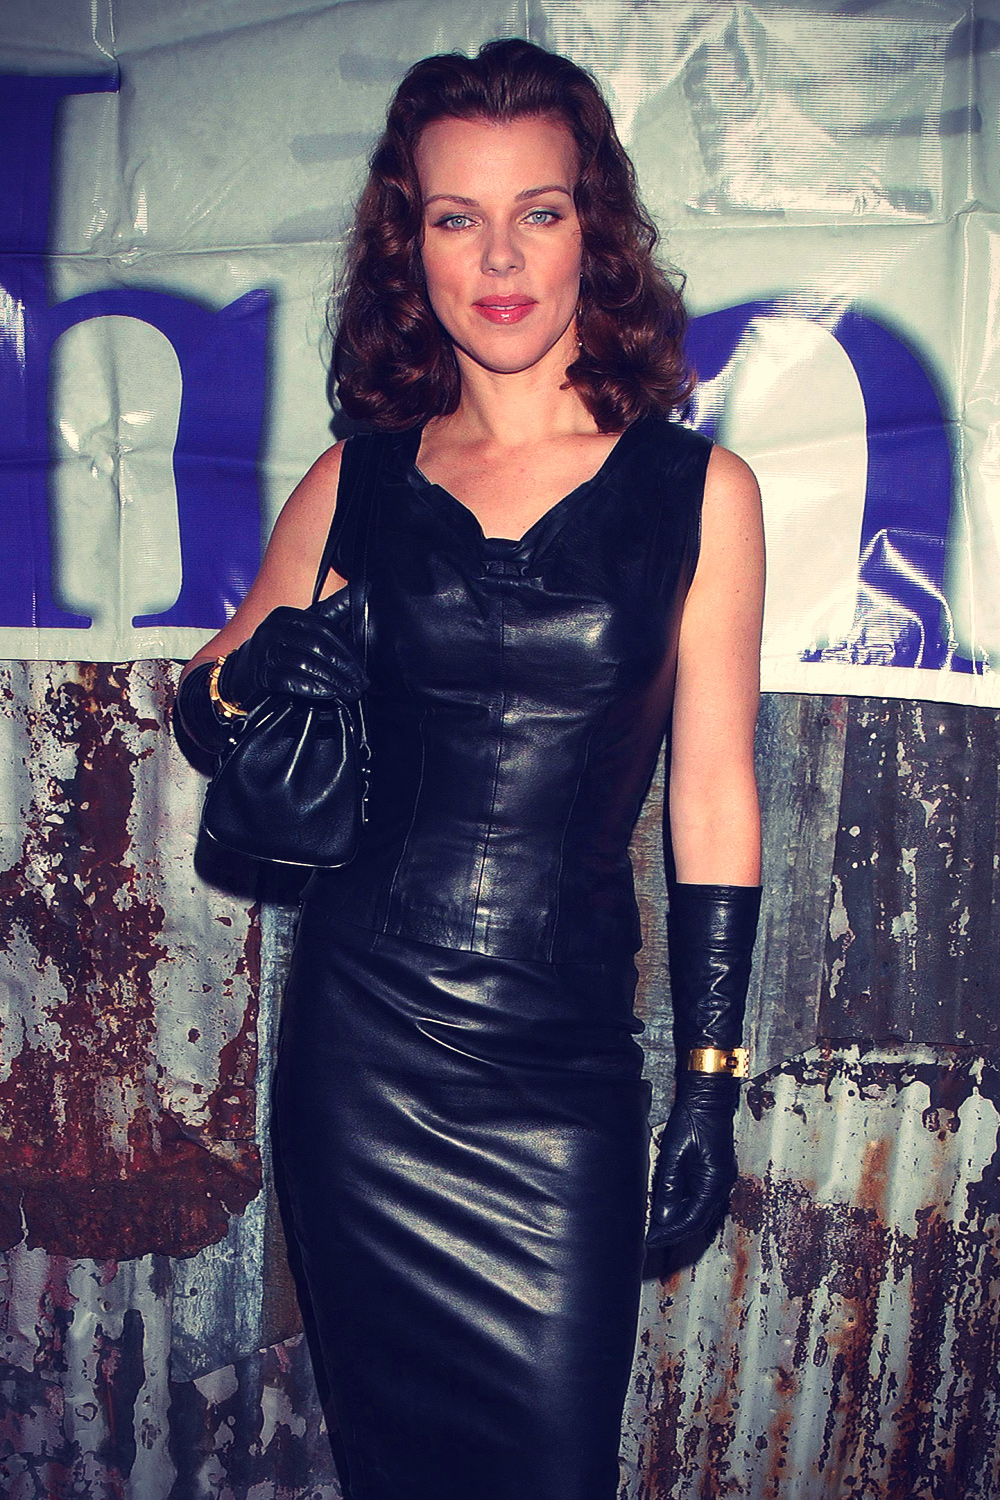 Debi Mazar dressed in Sexy Black Leather